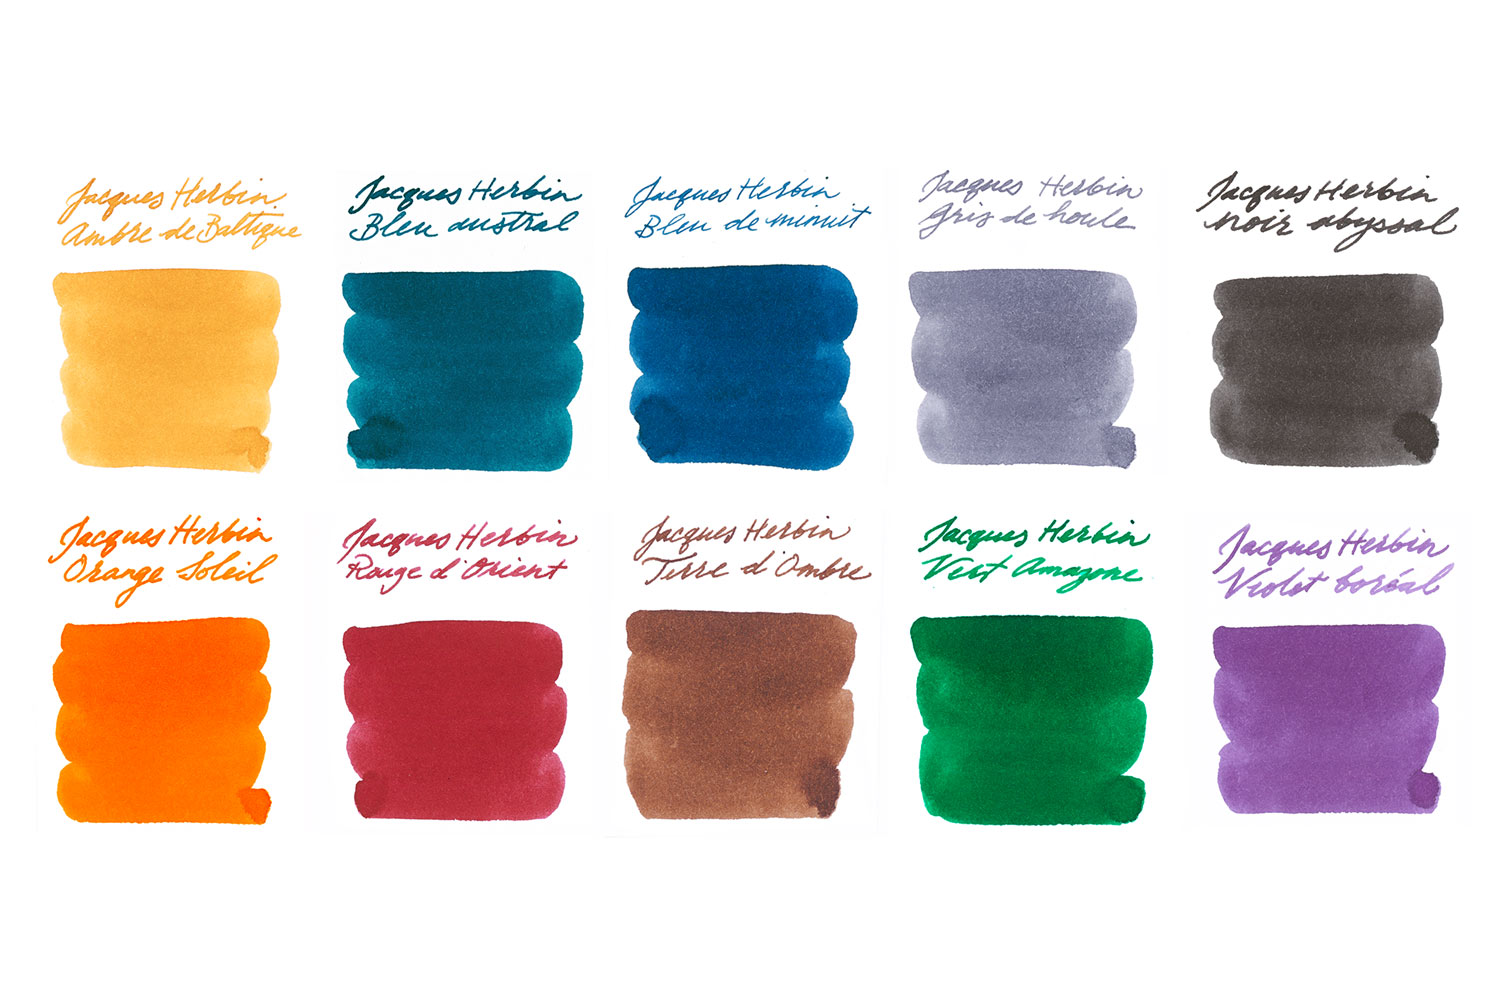 Jacques Herbin Standard Full Line - Ink Sample Set